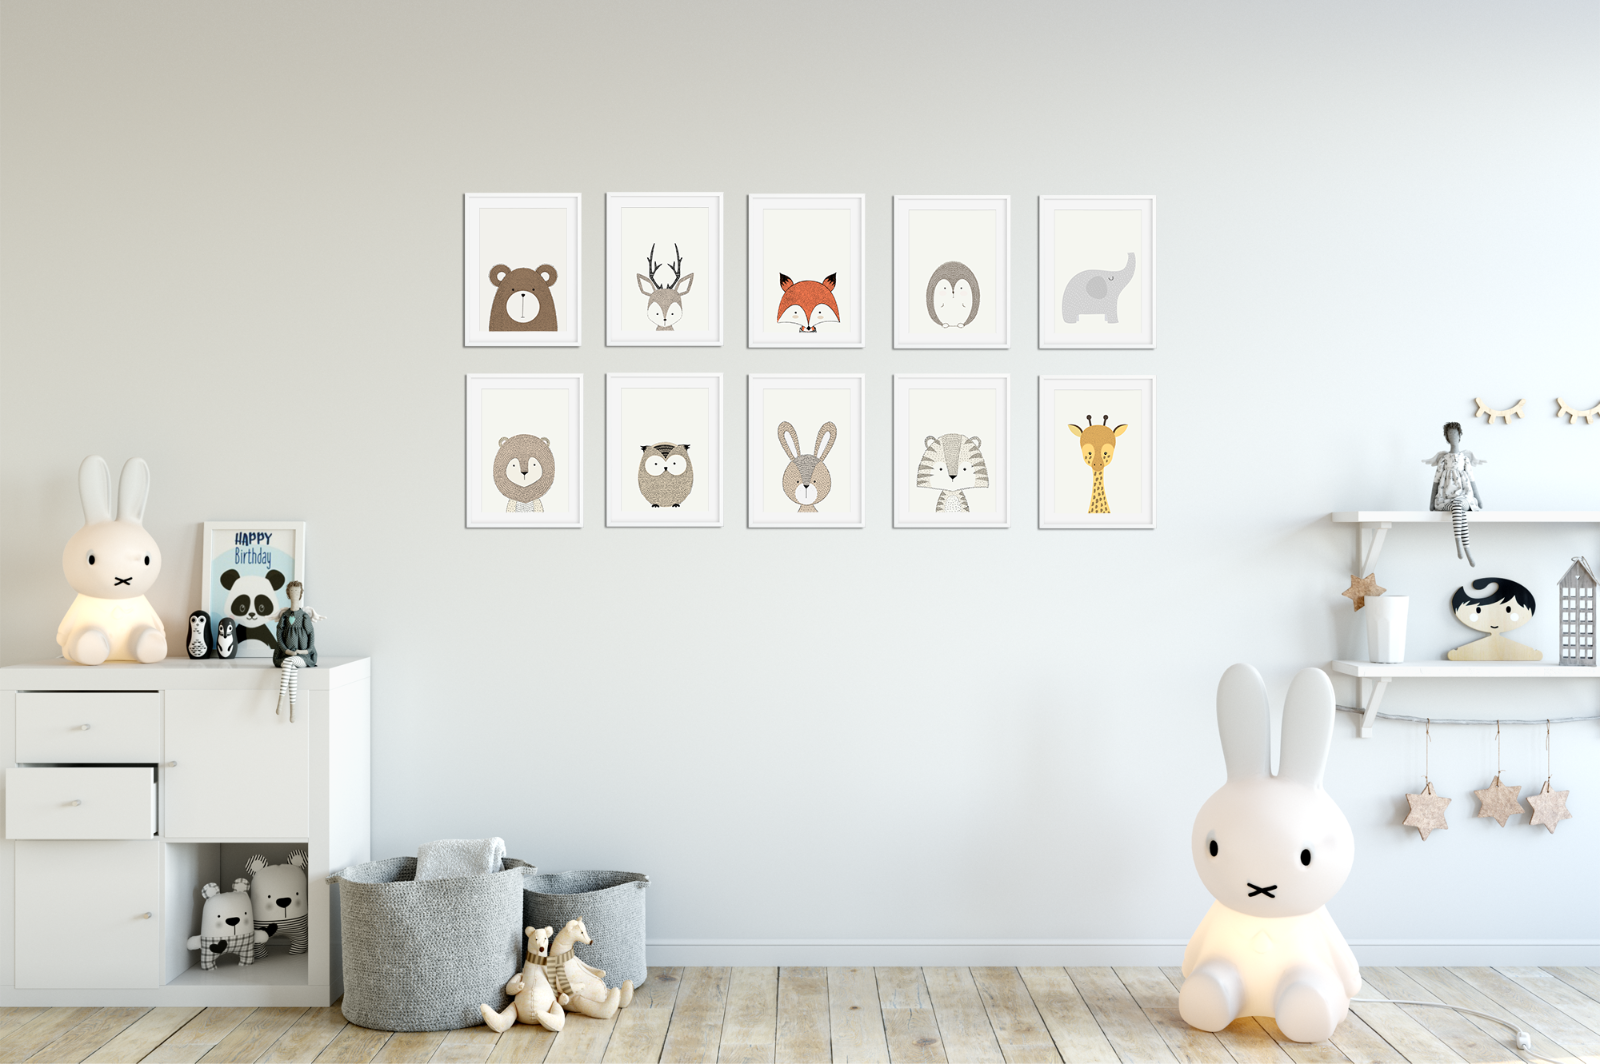 4 Of 5 Peekaboo Animal Prints For Nursery Prints Set Baby Christening  Bedroom Decor A5